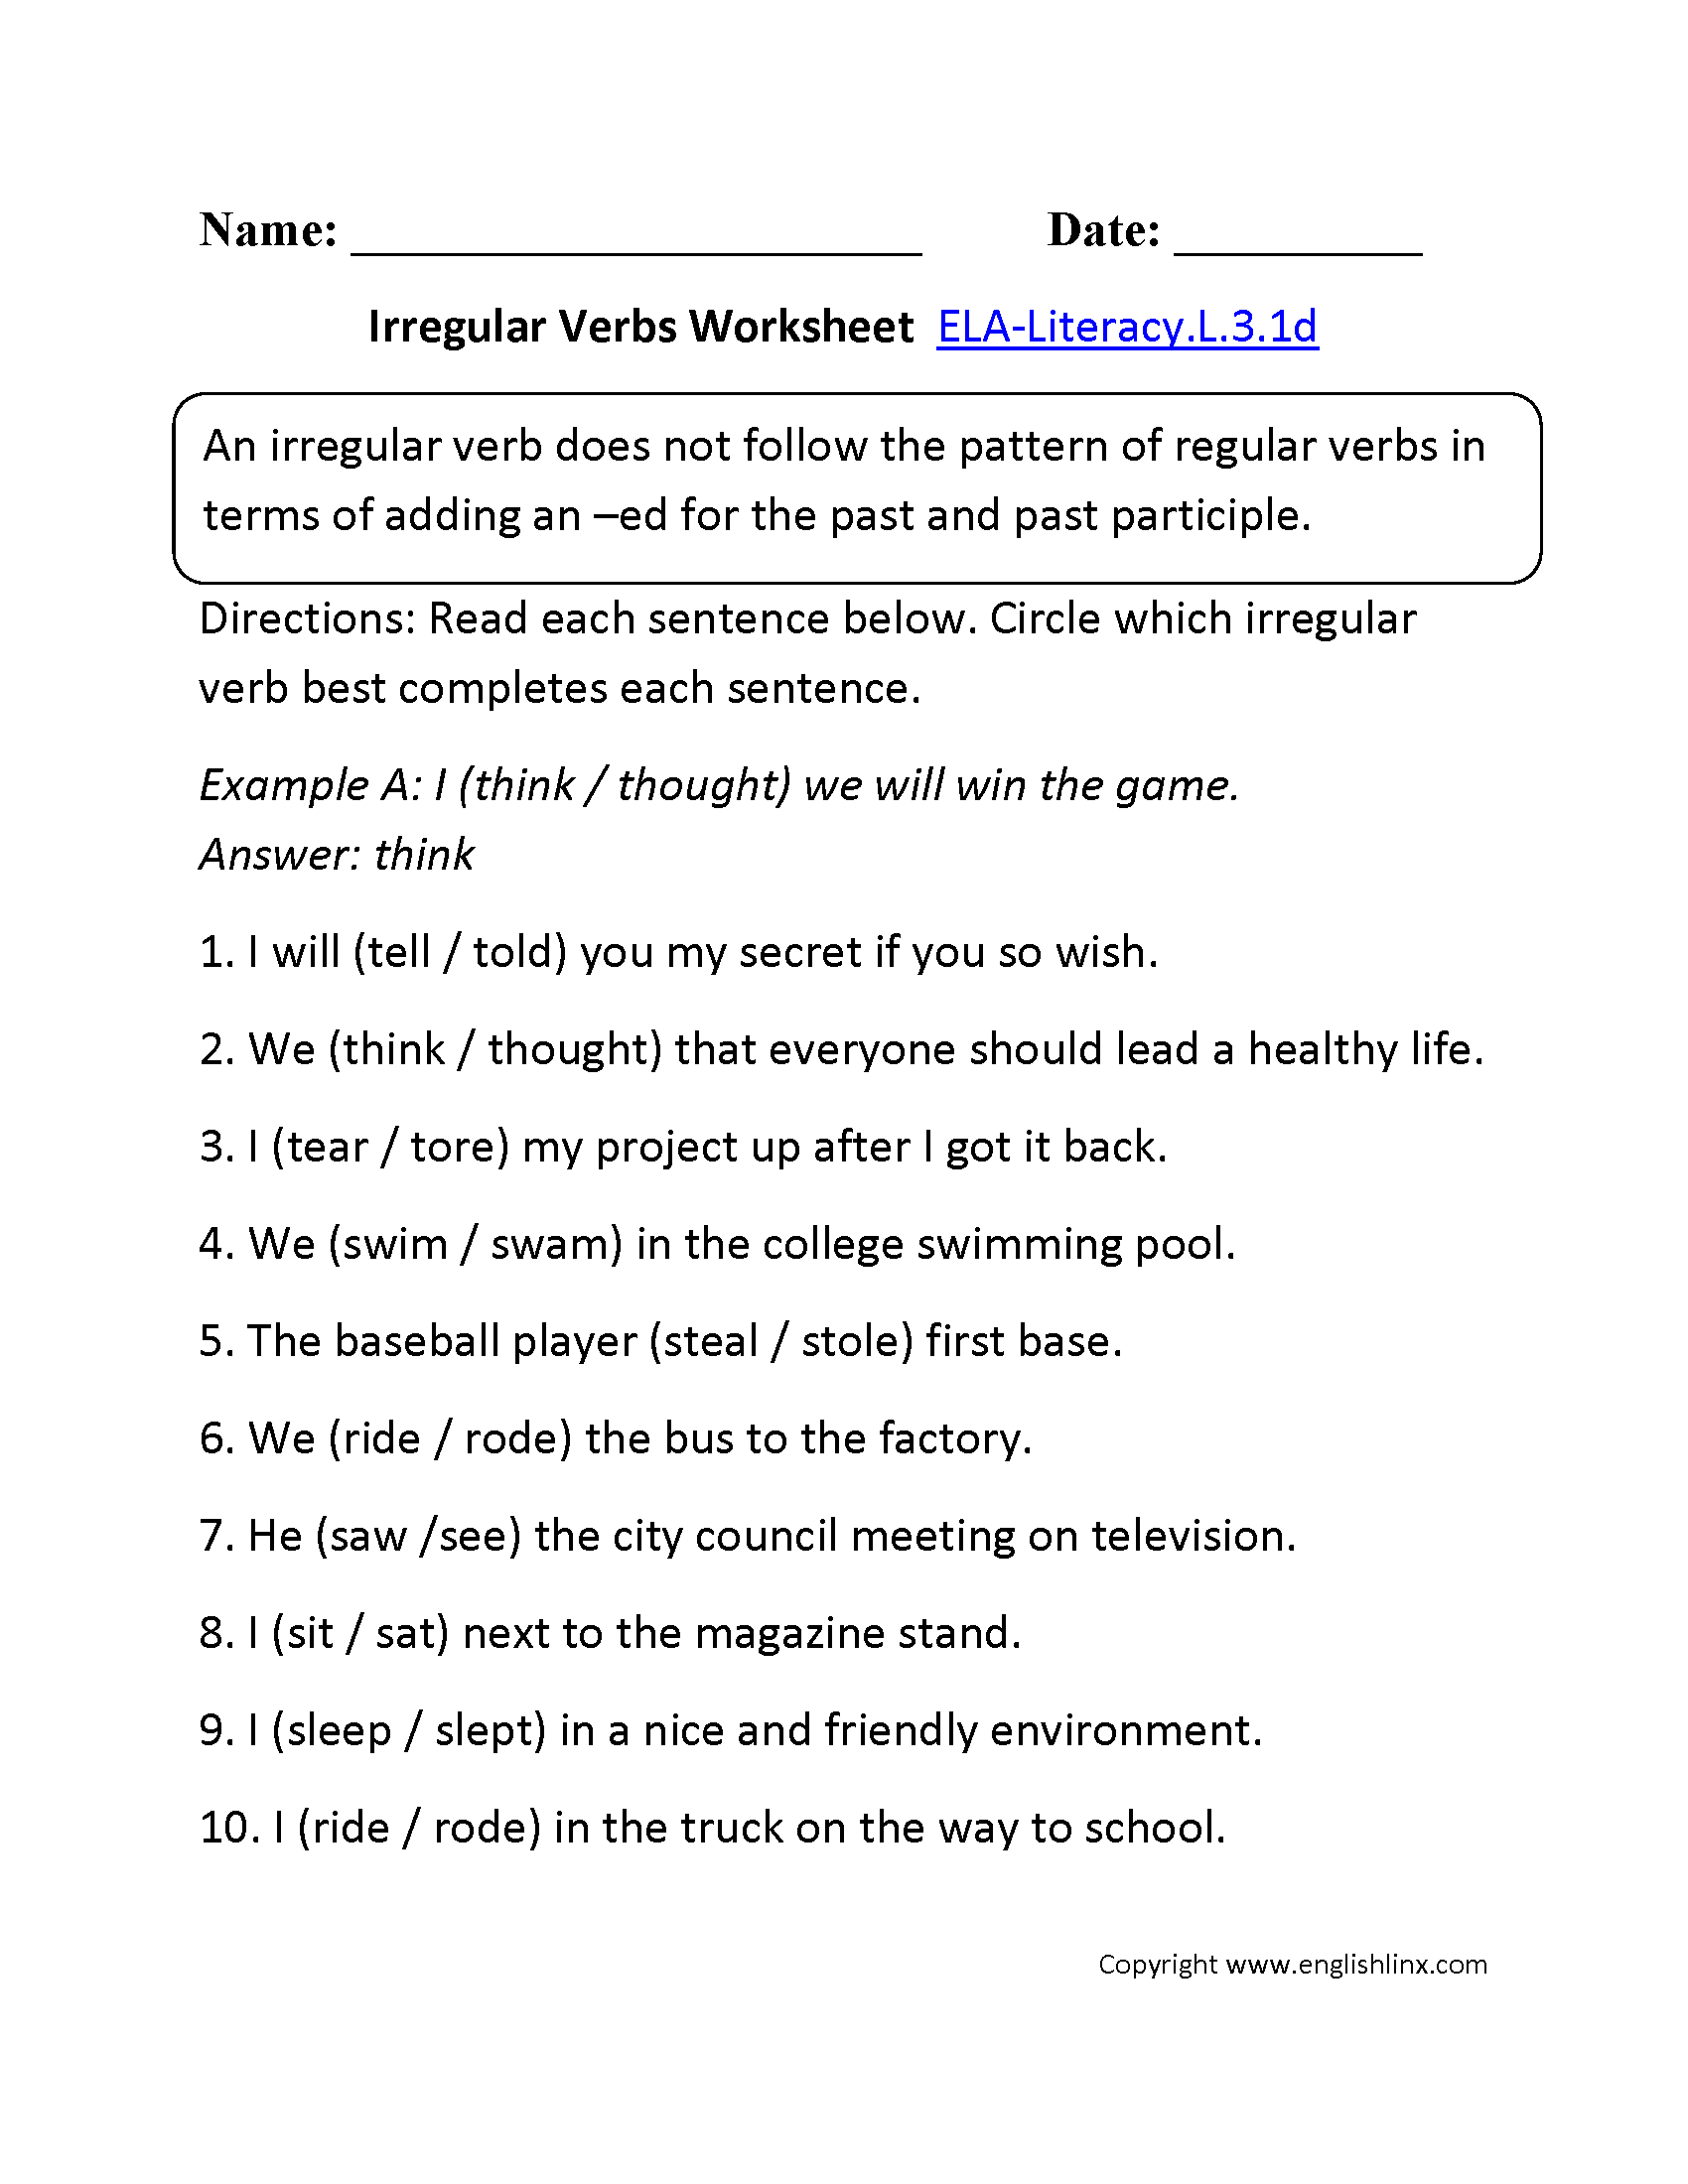 Worksheets Third Grade Ela Worksheets irregular verbs worksheet 1 ela literacy l 3 1d language english worksheets that are aligned to the grade common core standards for language